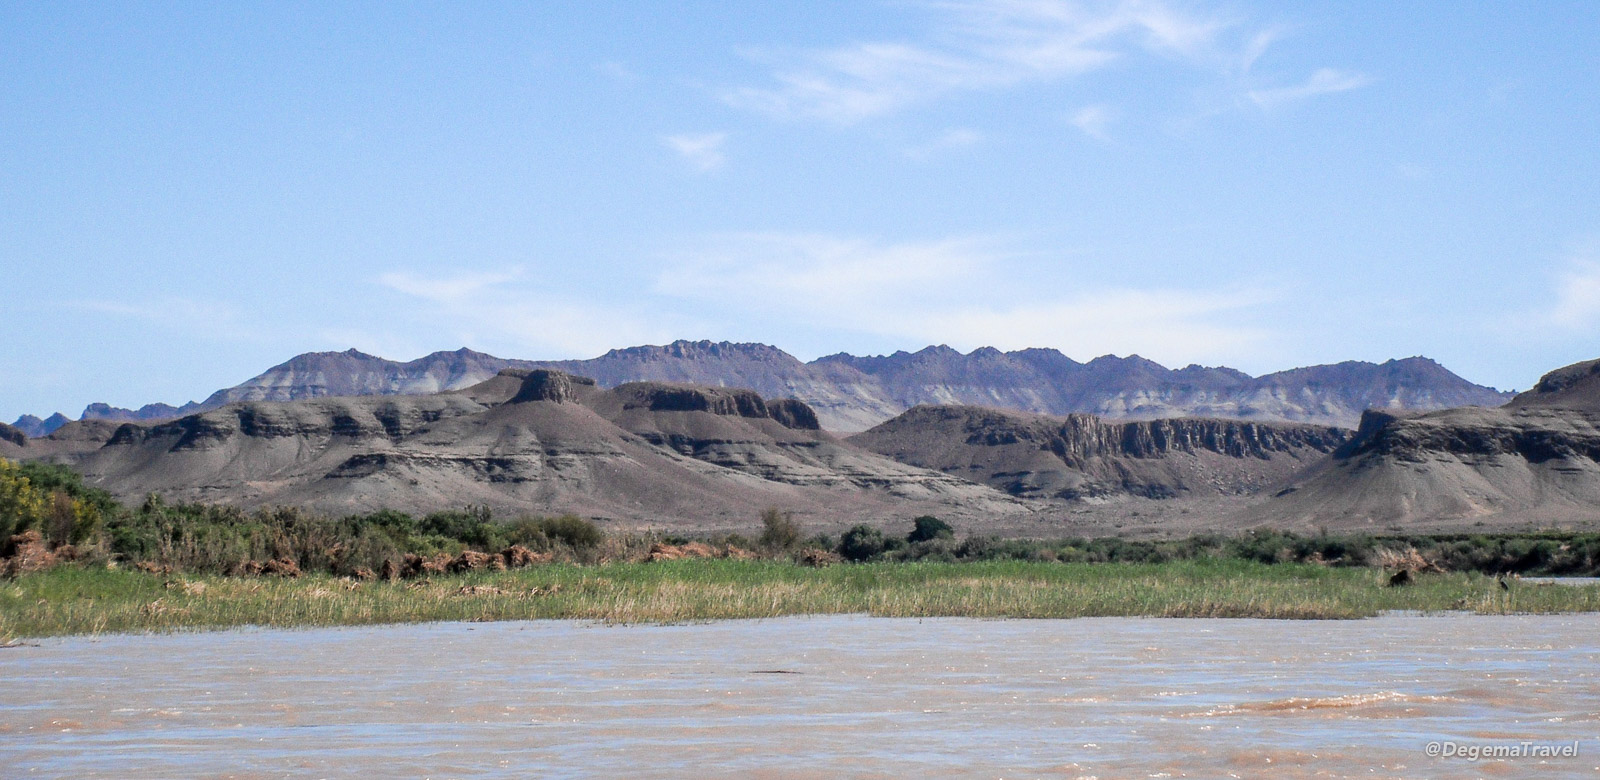 The bank of the Orange River, Namibia